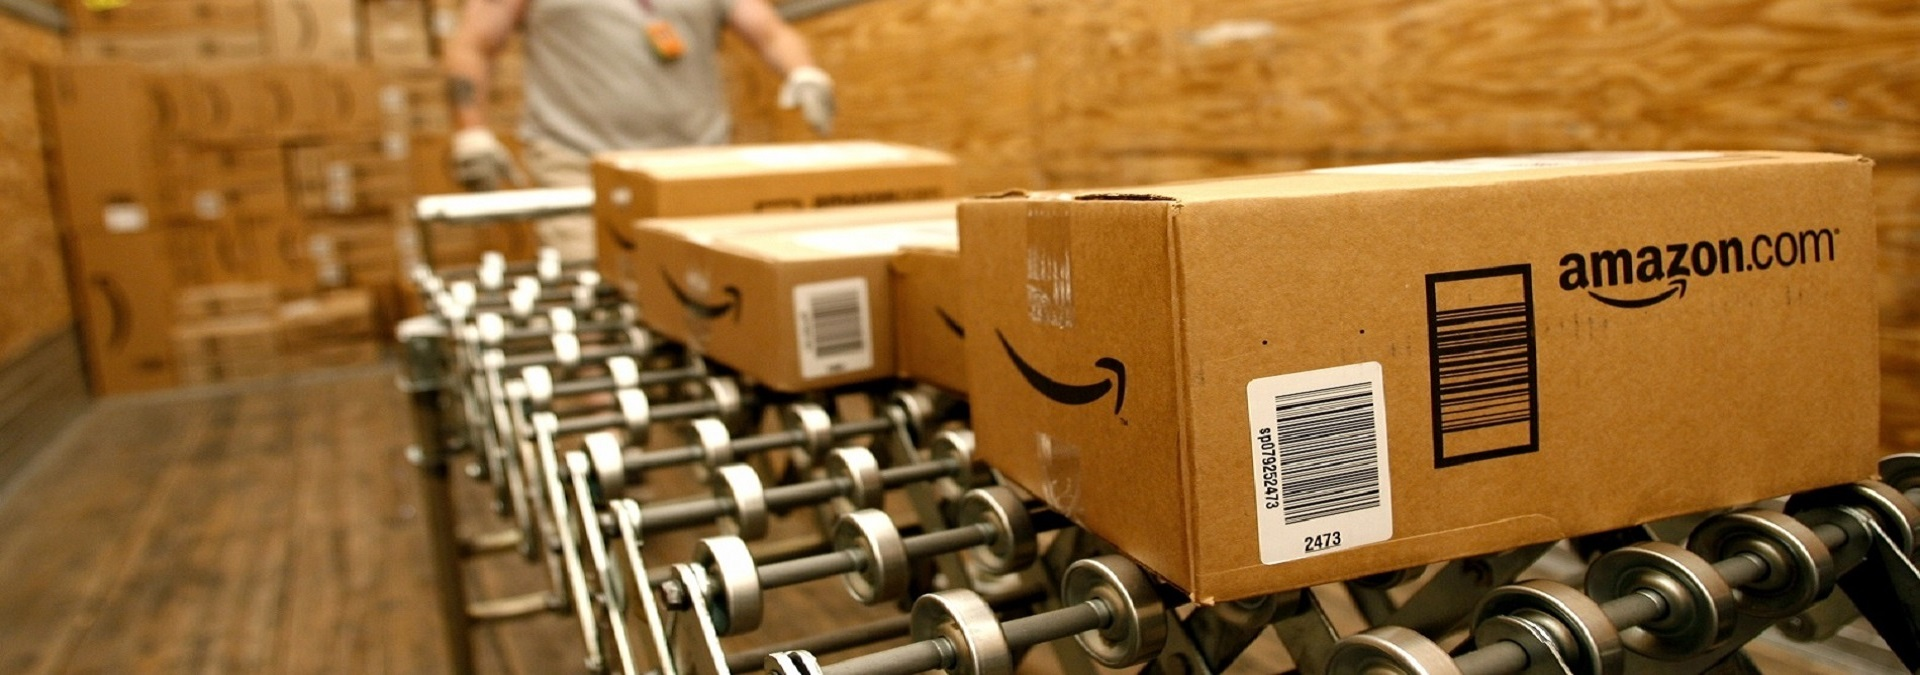 E-commerce and e-export on Amazon occupy an important place in the world e-commerce market.